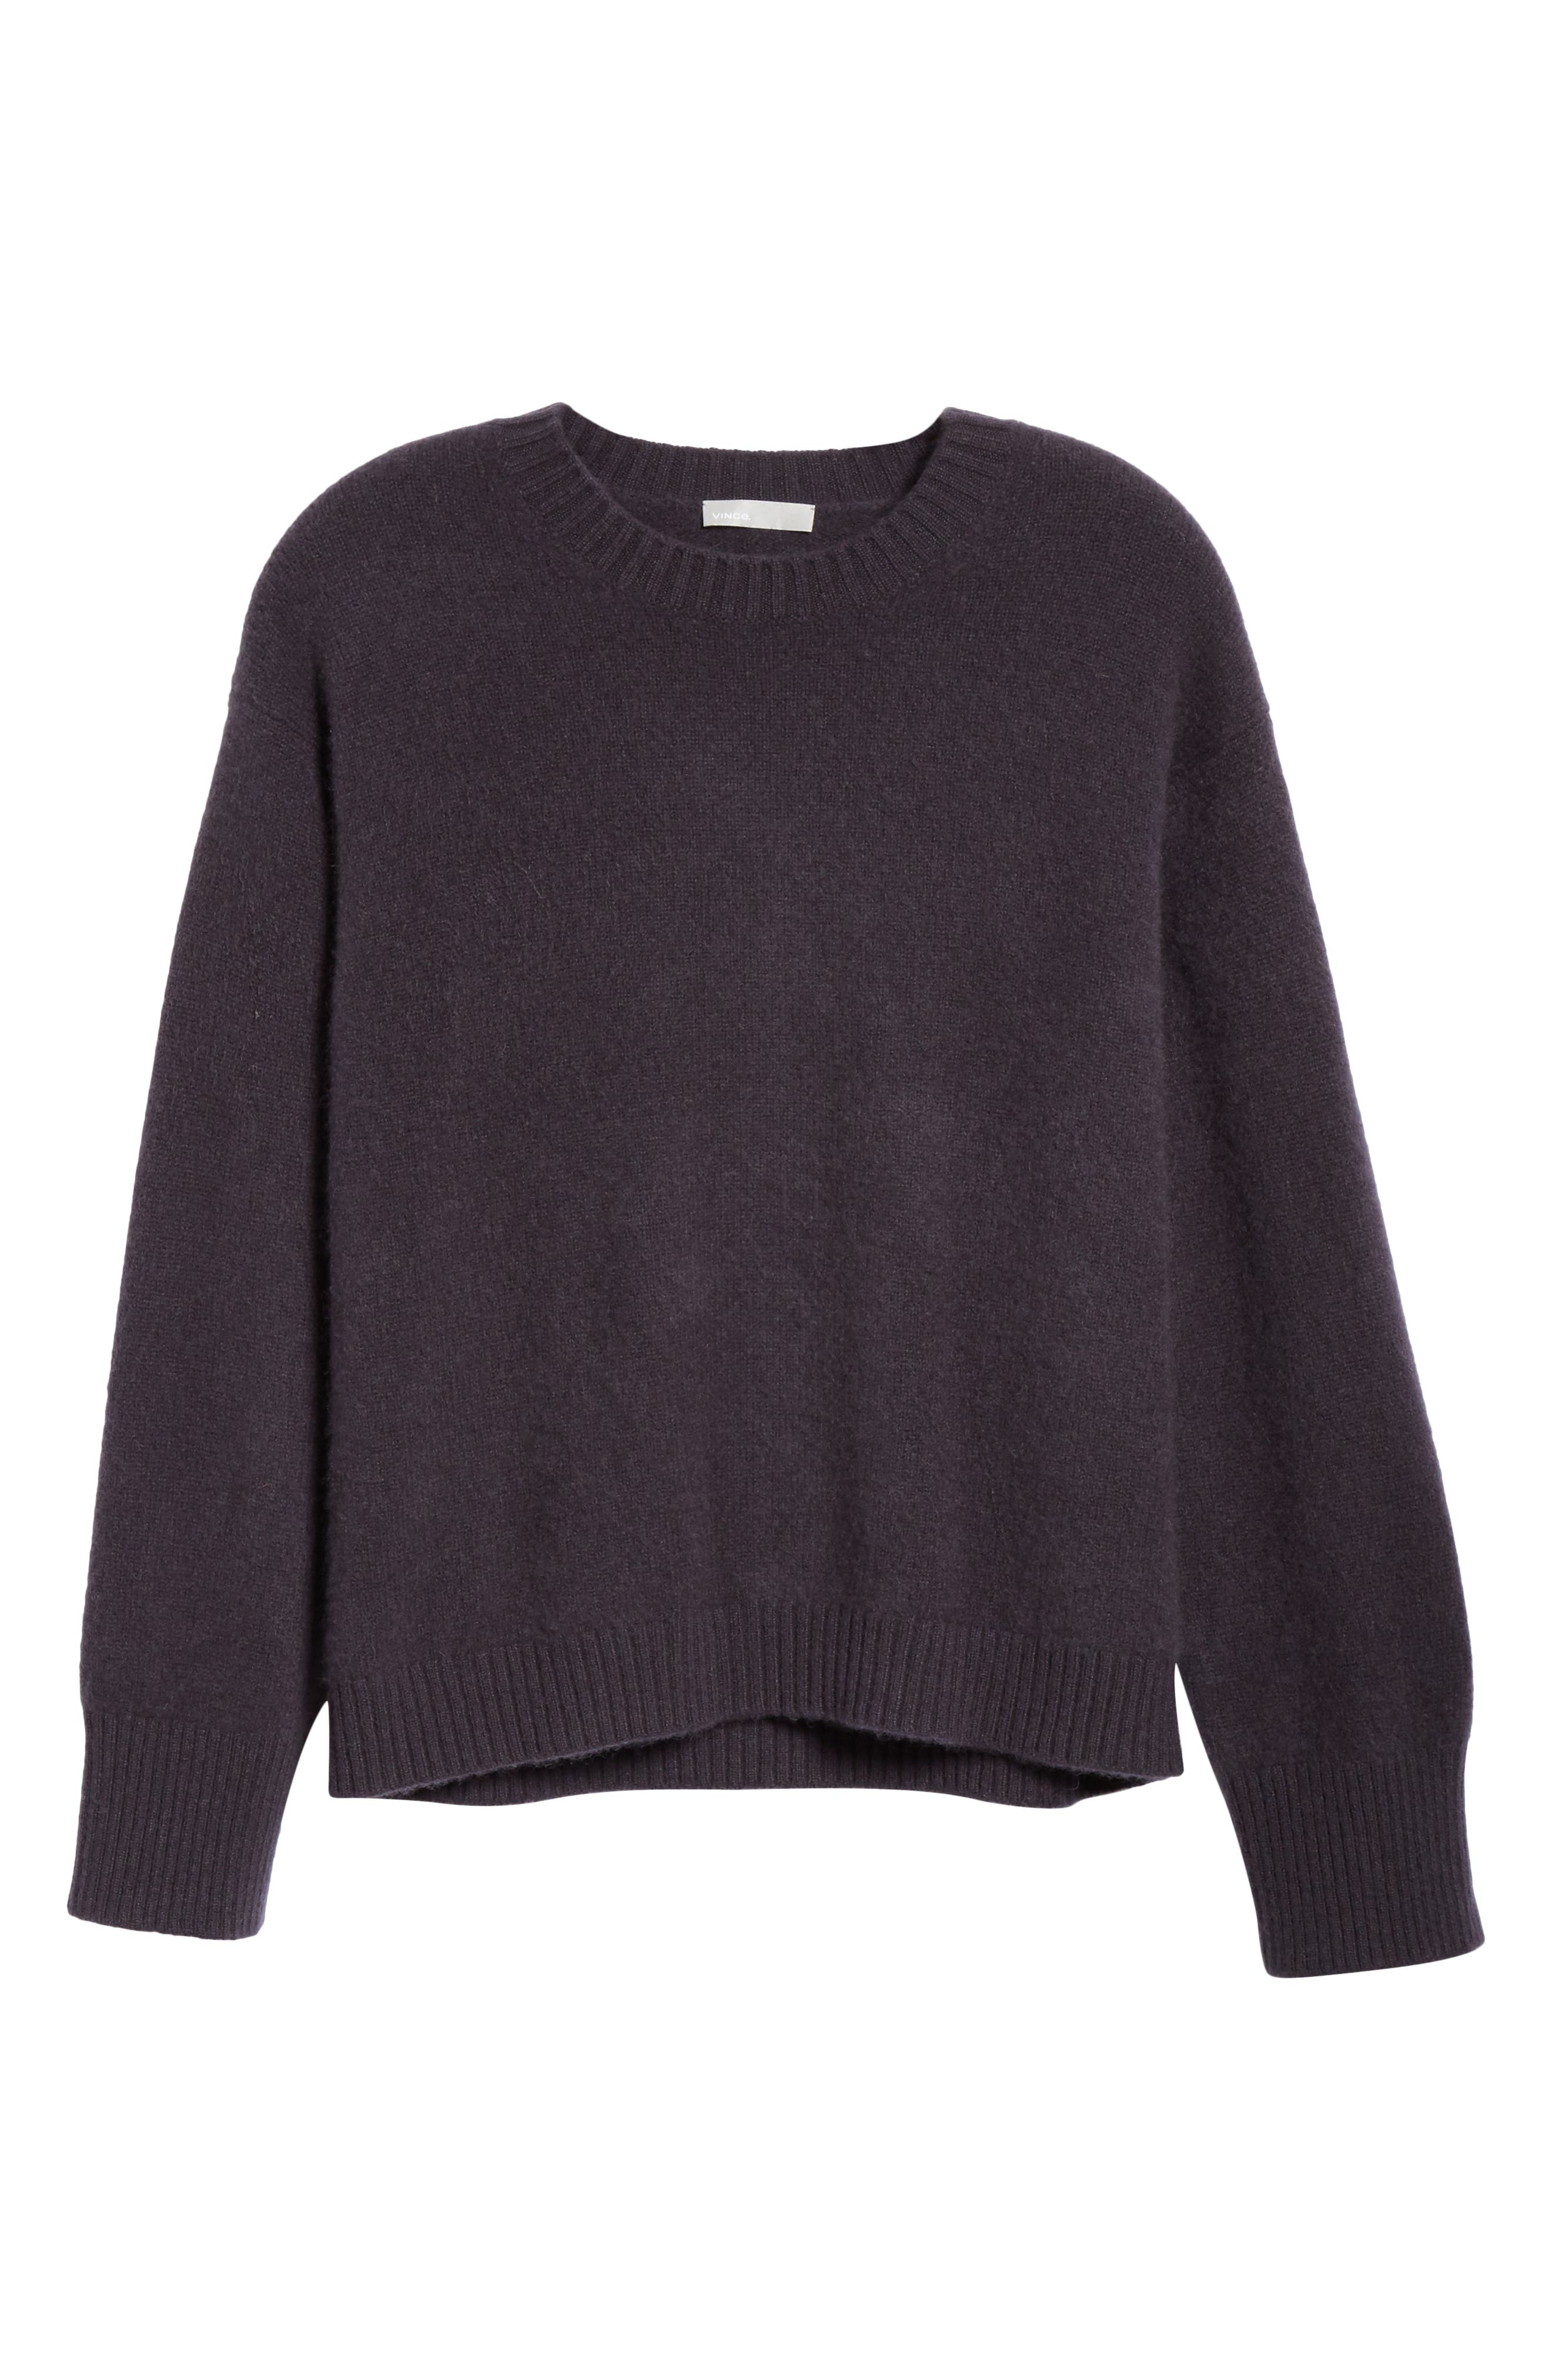 VINCE, Boxy Cashmere Sweater, Alternate thumbnail 6, color, OBSIDIAN